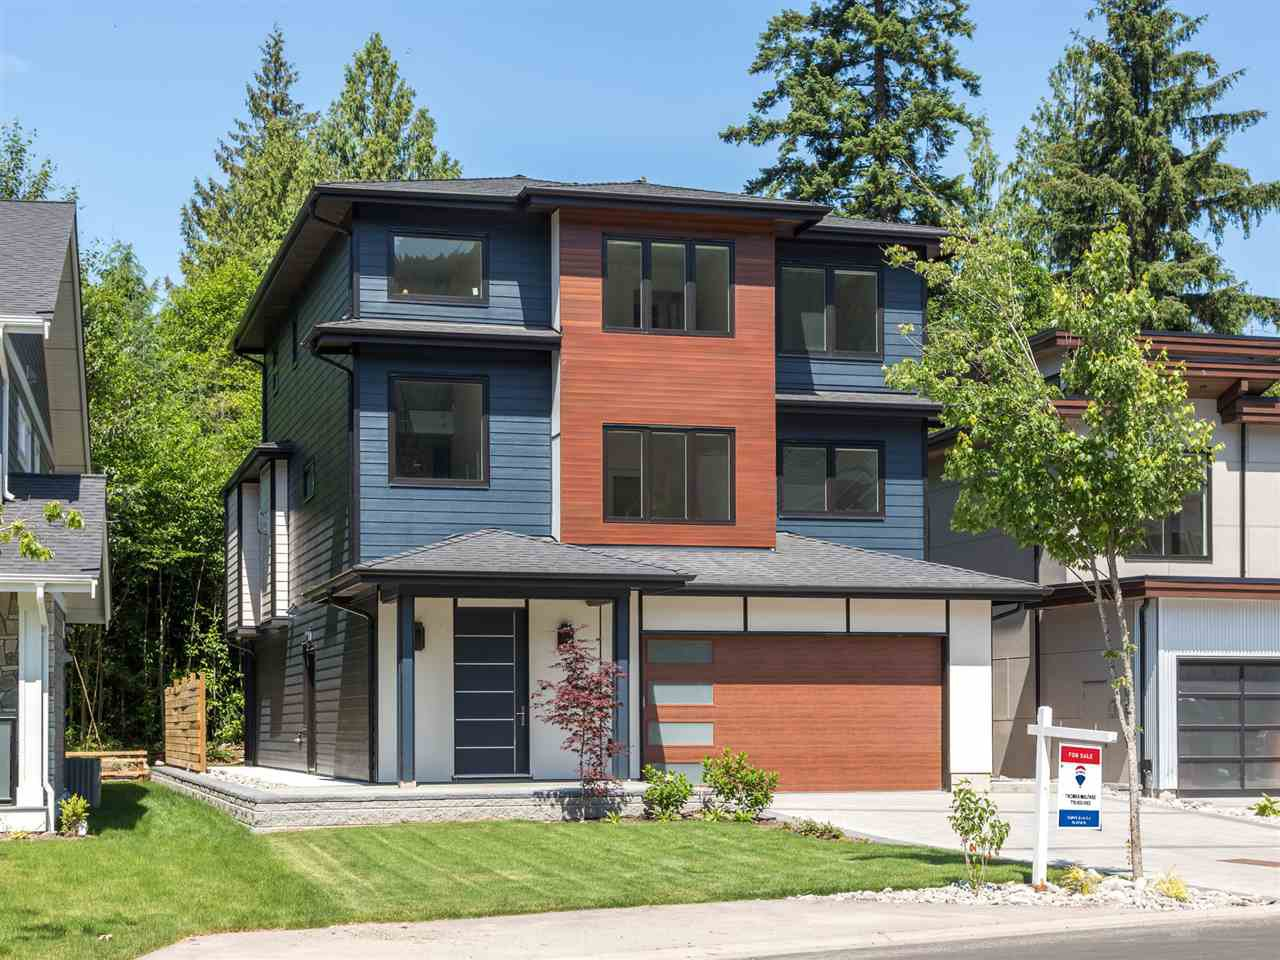 """Main Photo: 40289 ARISTOTLE Drive in Squamish: University Highlands House for sale in """"University Meadows"""" : MLS®# R2276980"""